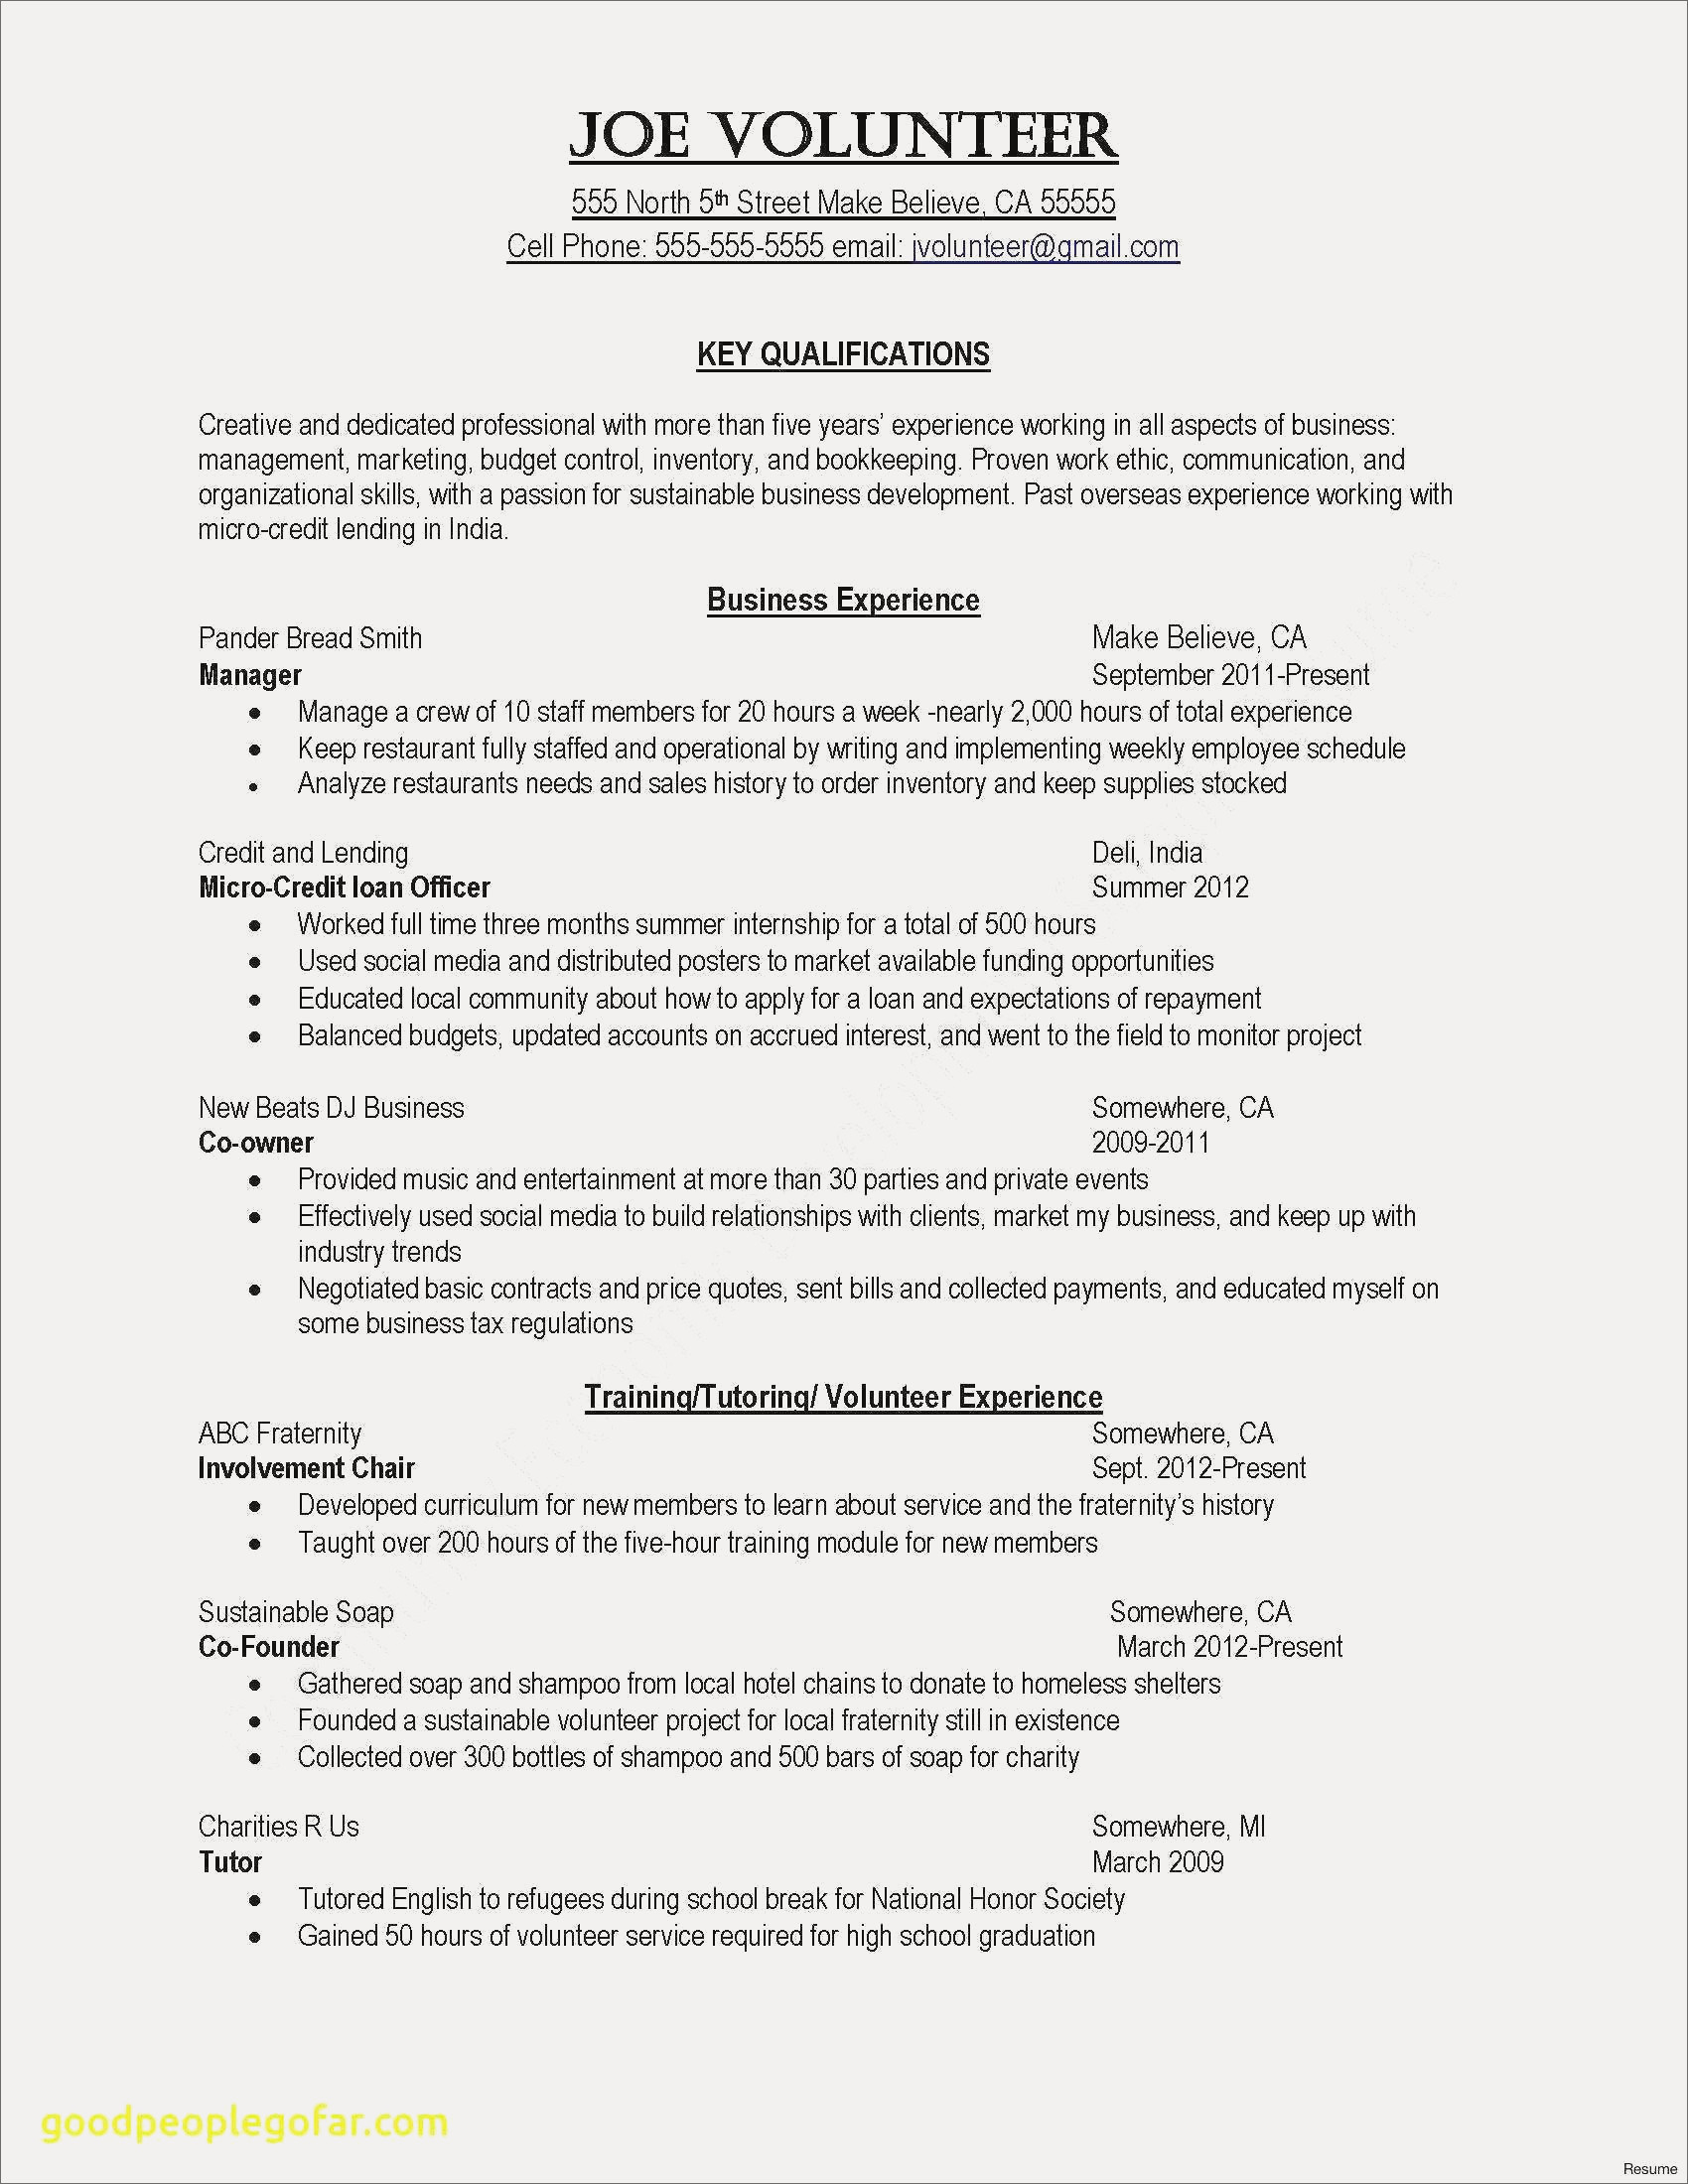 Senior Executive Resume Examples - Awesome Executive Resume Samples Free